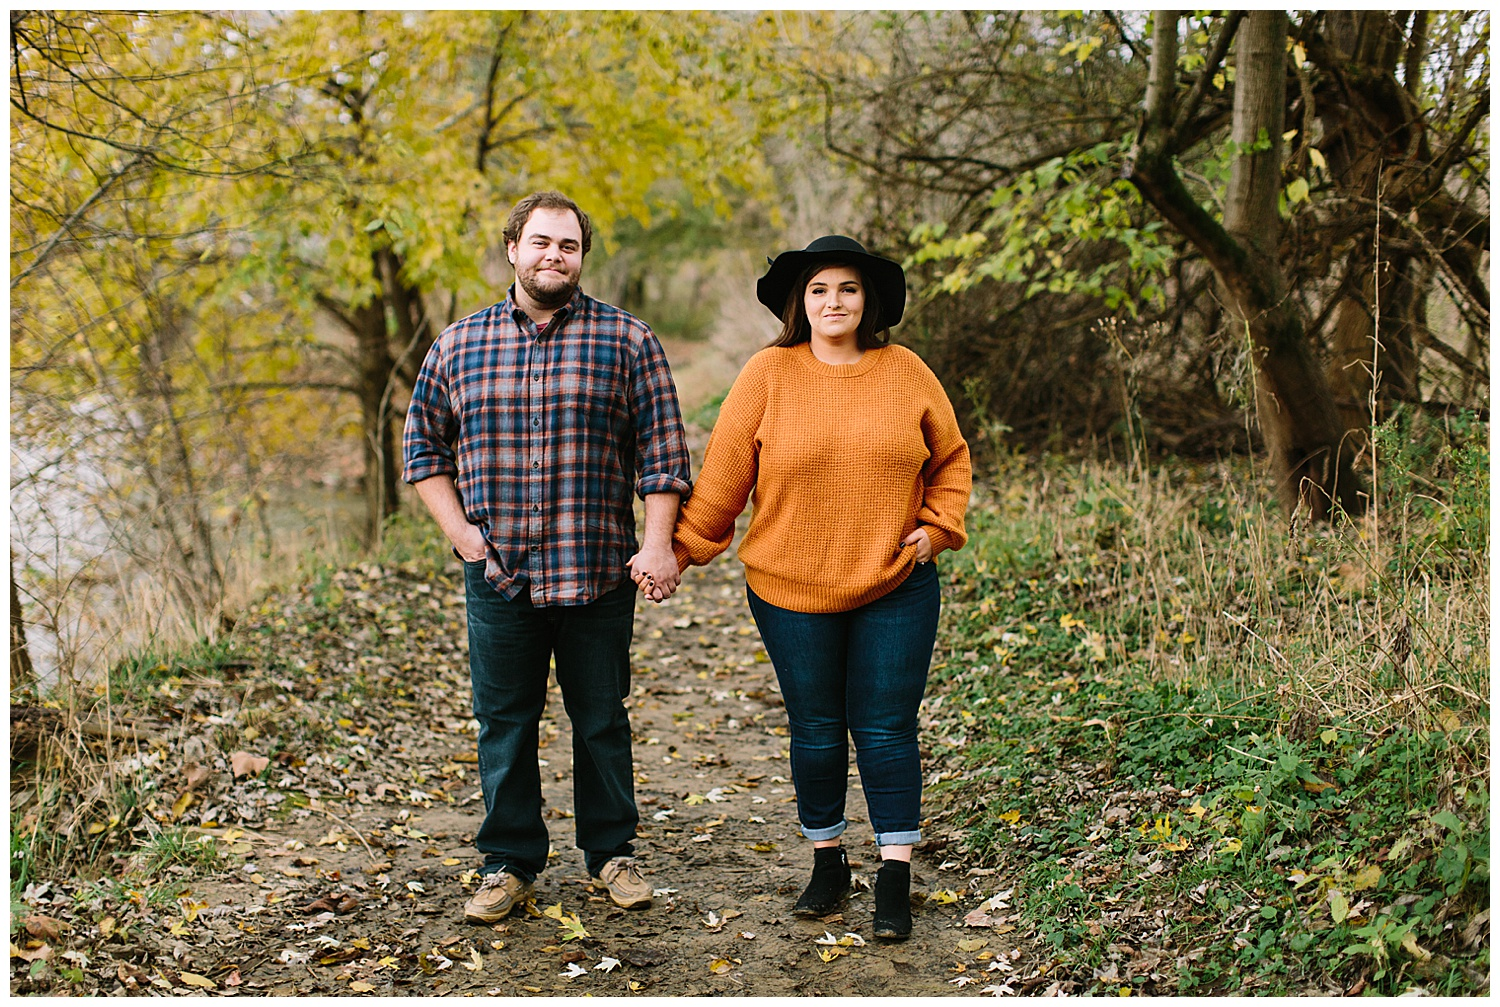 trent.and.kendra.photography.beckley.creek.park-1.jpg